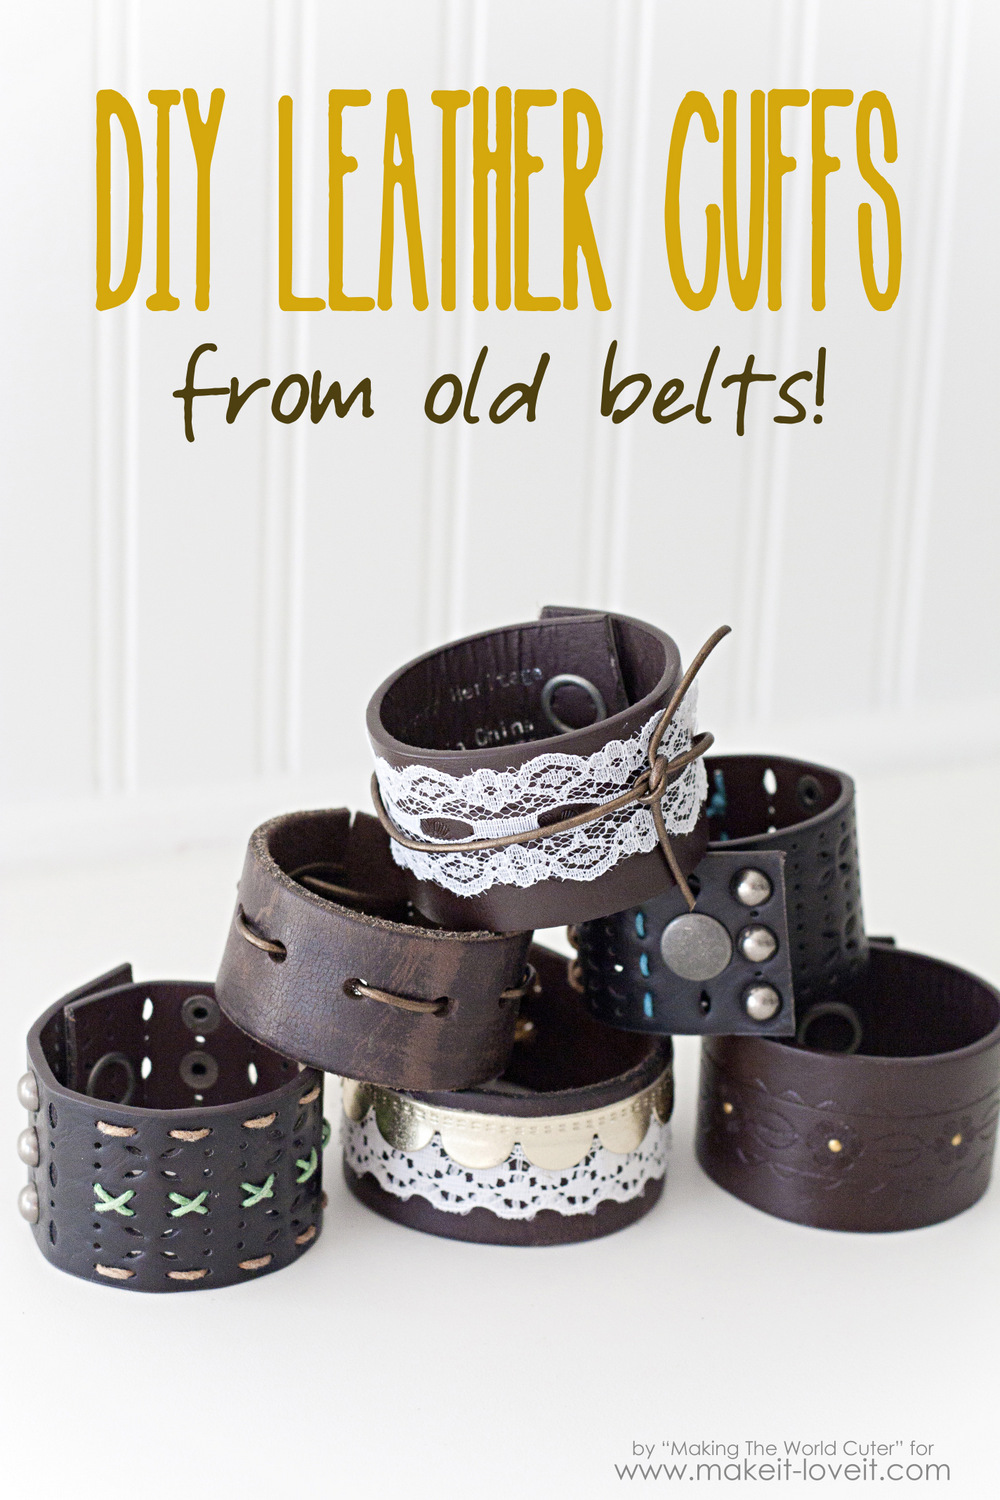 DIY Leather Cuffs from Old Belts